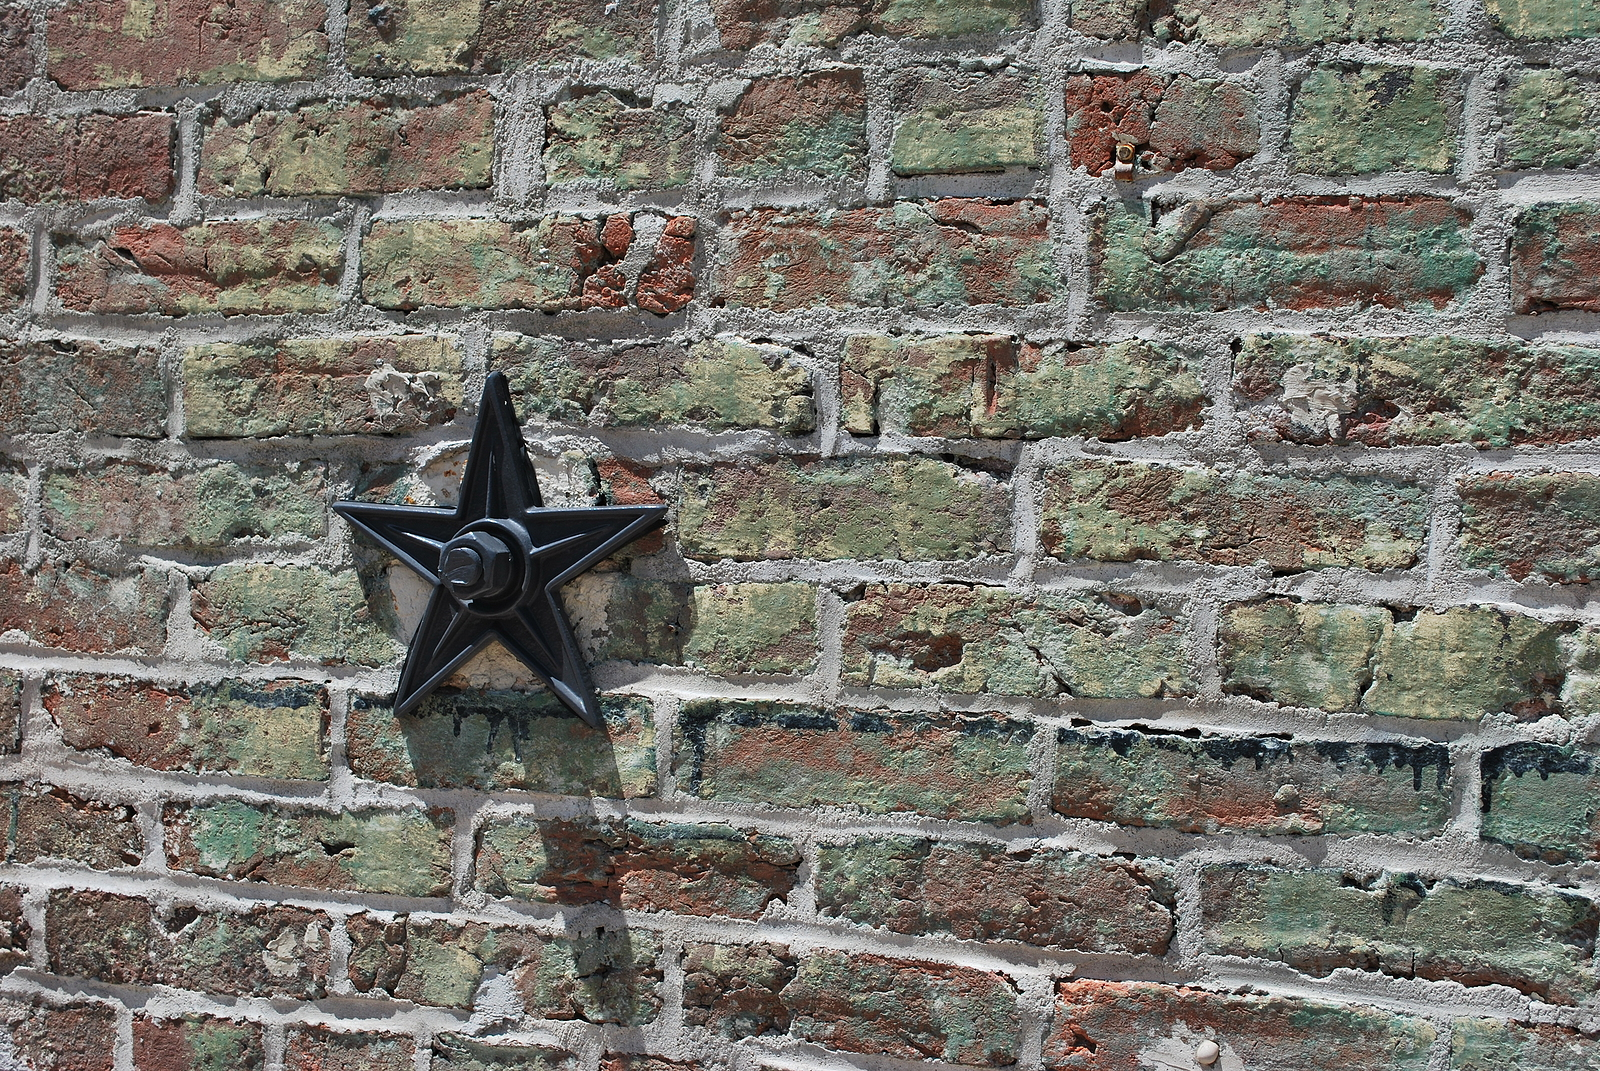 Star-tie-rod-stabilizes-old-tuckpointed-wall-renaissance-development-dc